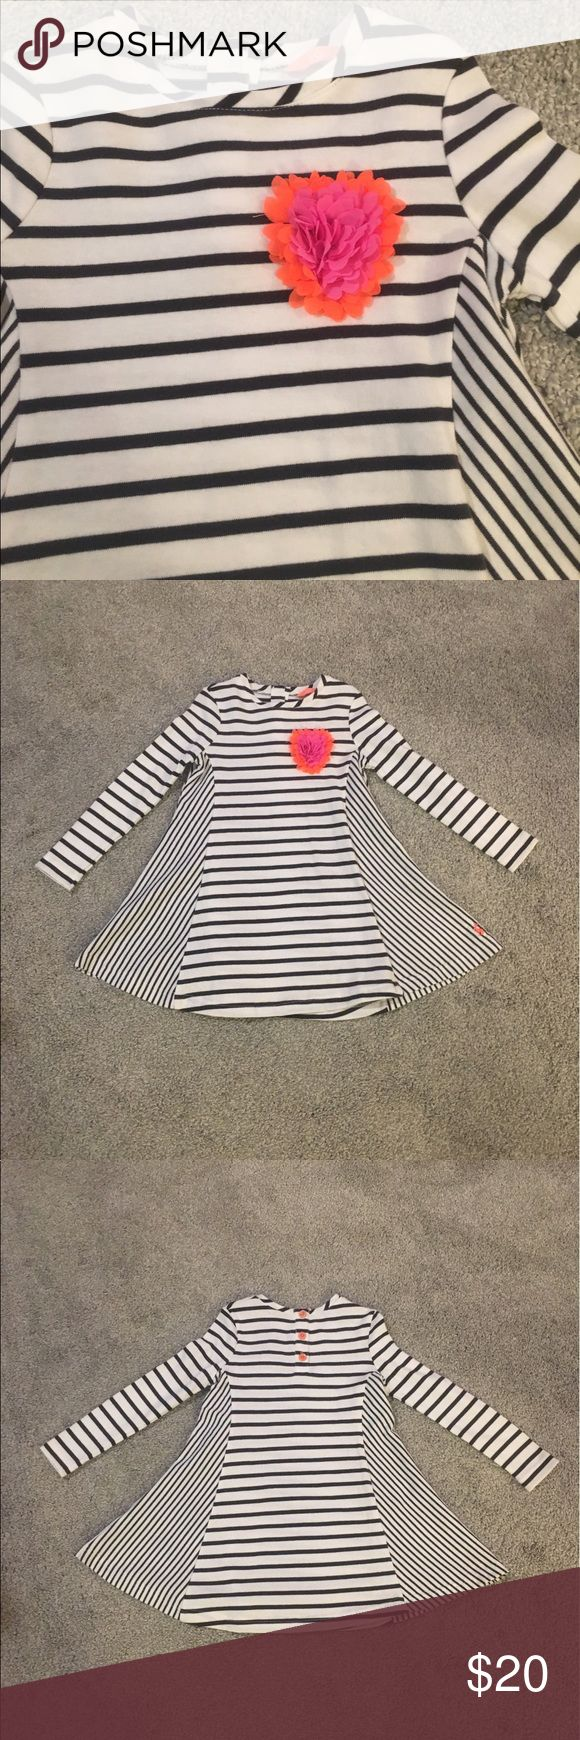 Joules Striped Girl's Dress NWOT. I absolutely love this dress; I think it's crazy adorable, unfortunately my daughter doesn't share the same sentiments, and it has never been worn. This long sleeved dress is white with black stripes and features a pink and orange heart on the front, button closure in back. Size 3-4 yr Joules Dresses